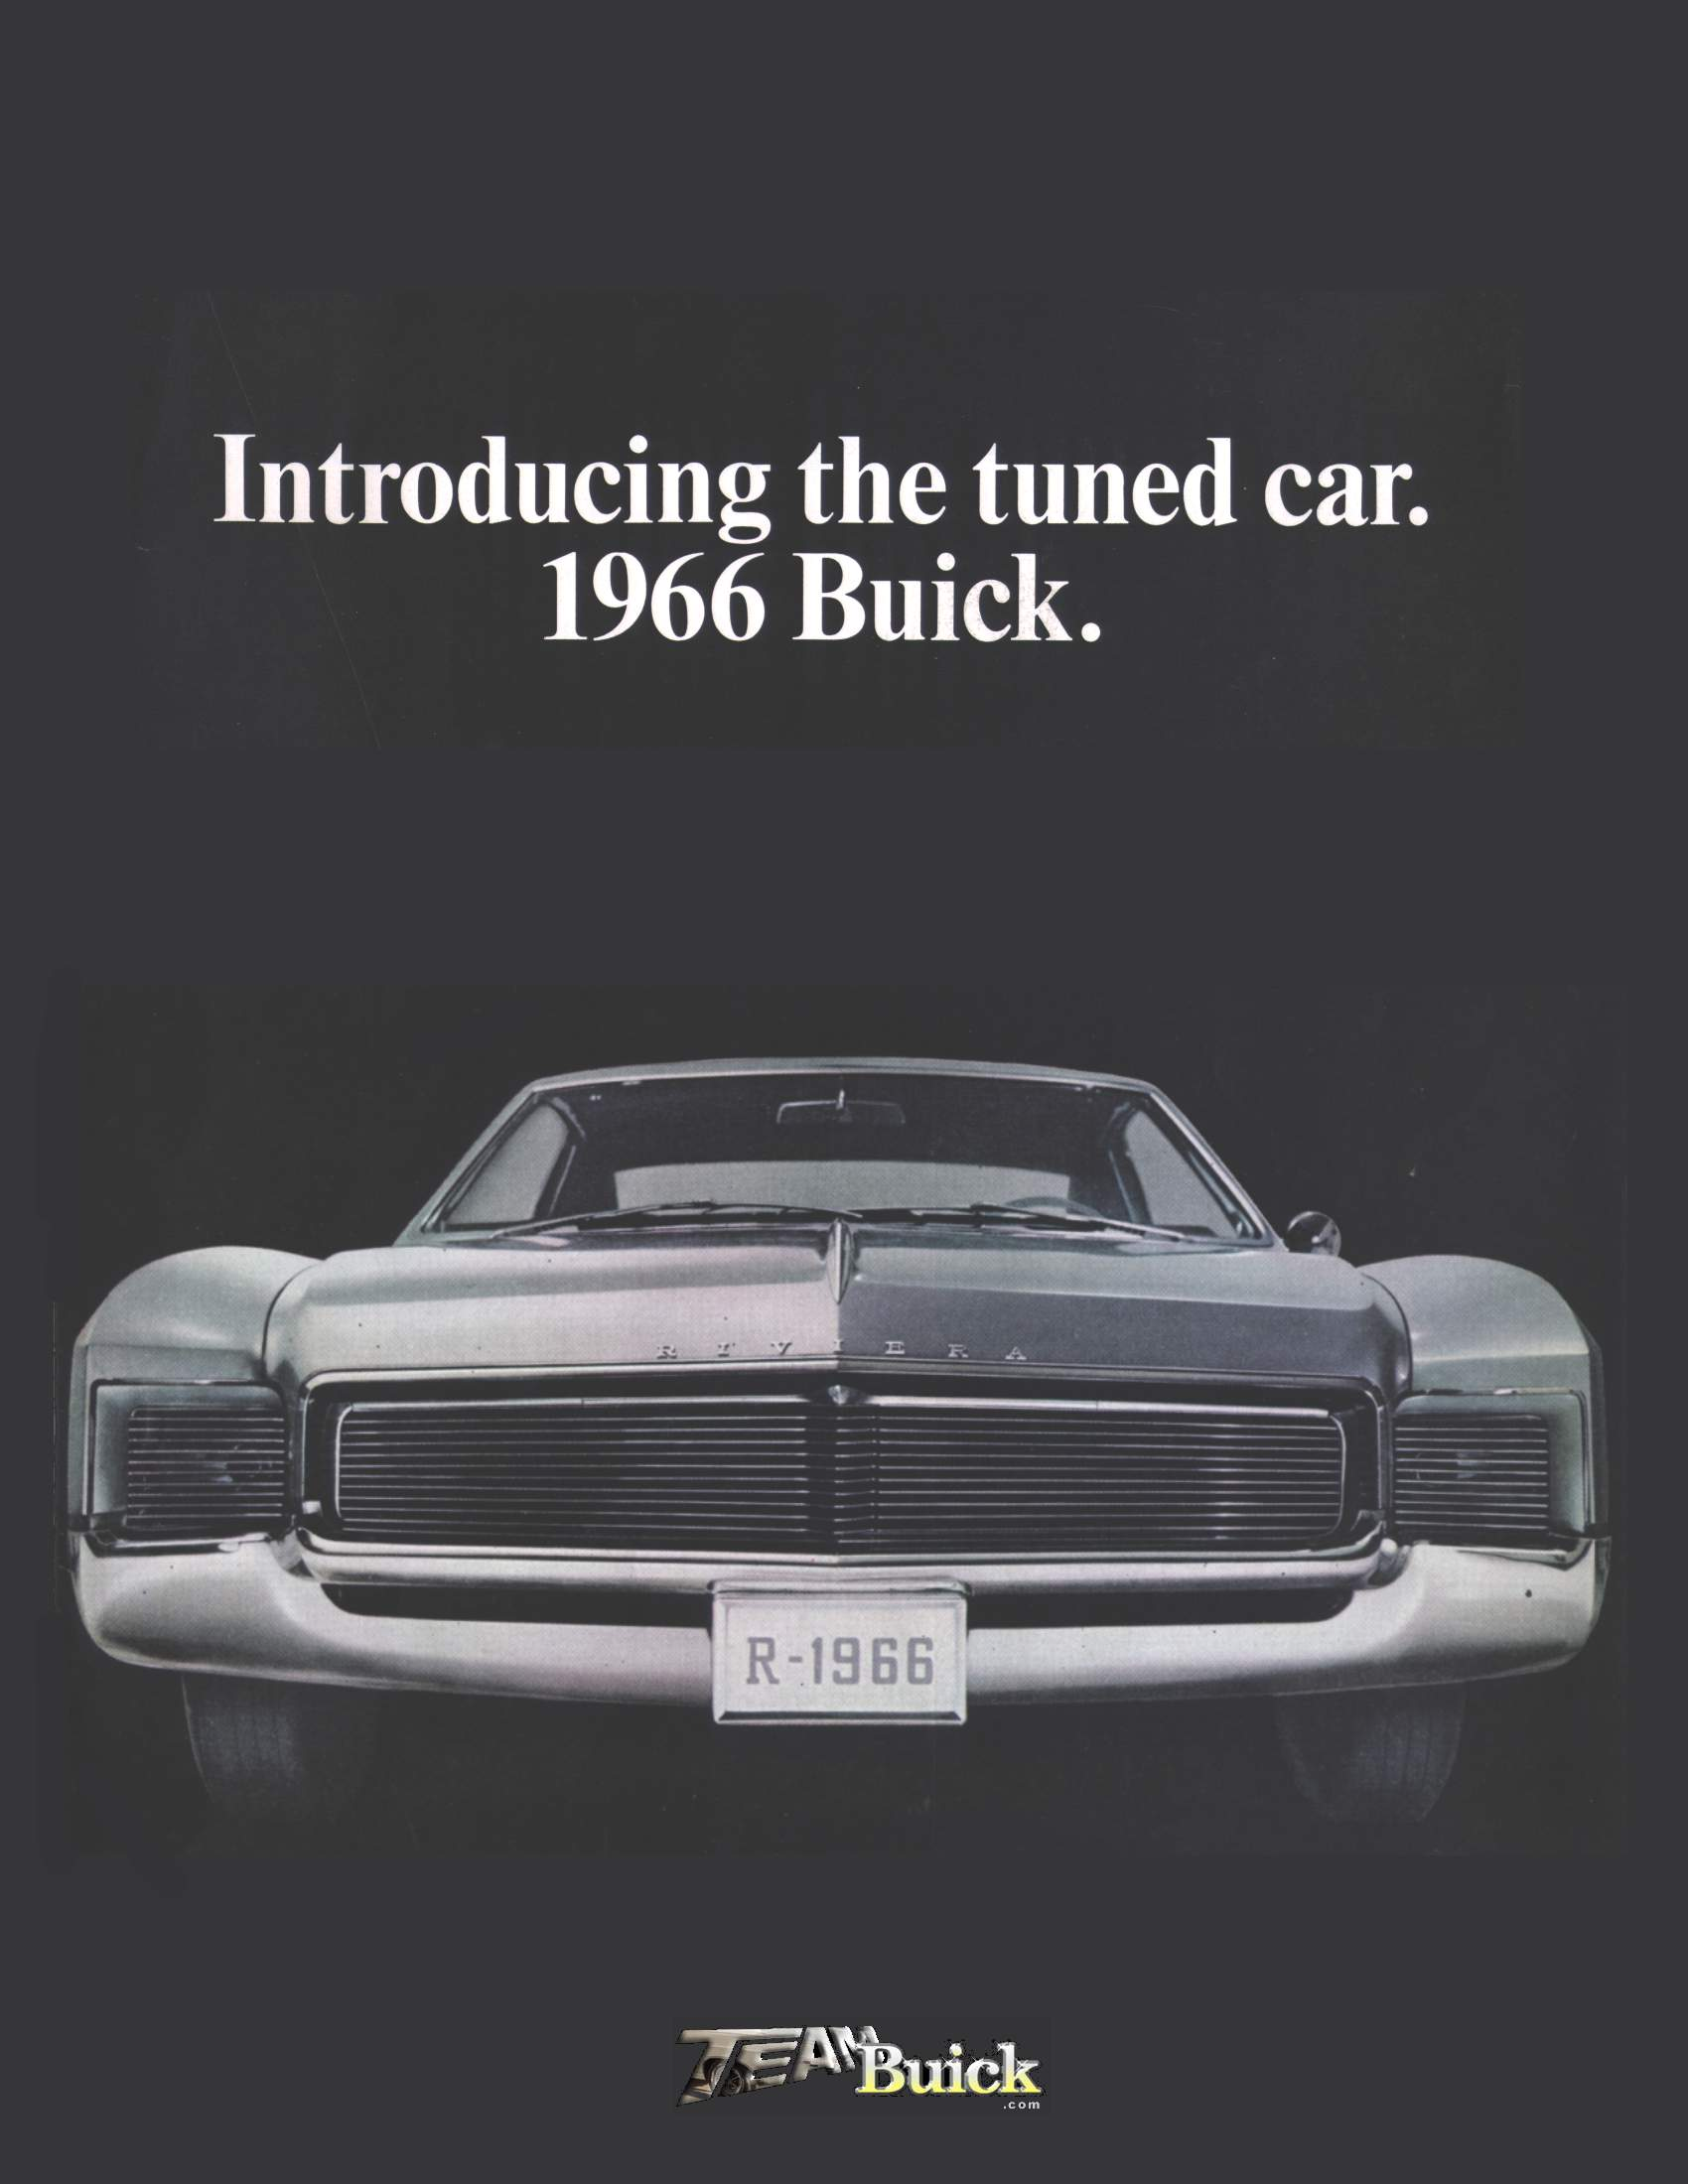 Introducing the tuned car. 1966 Buick.